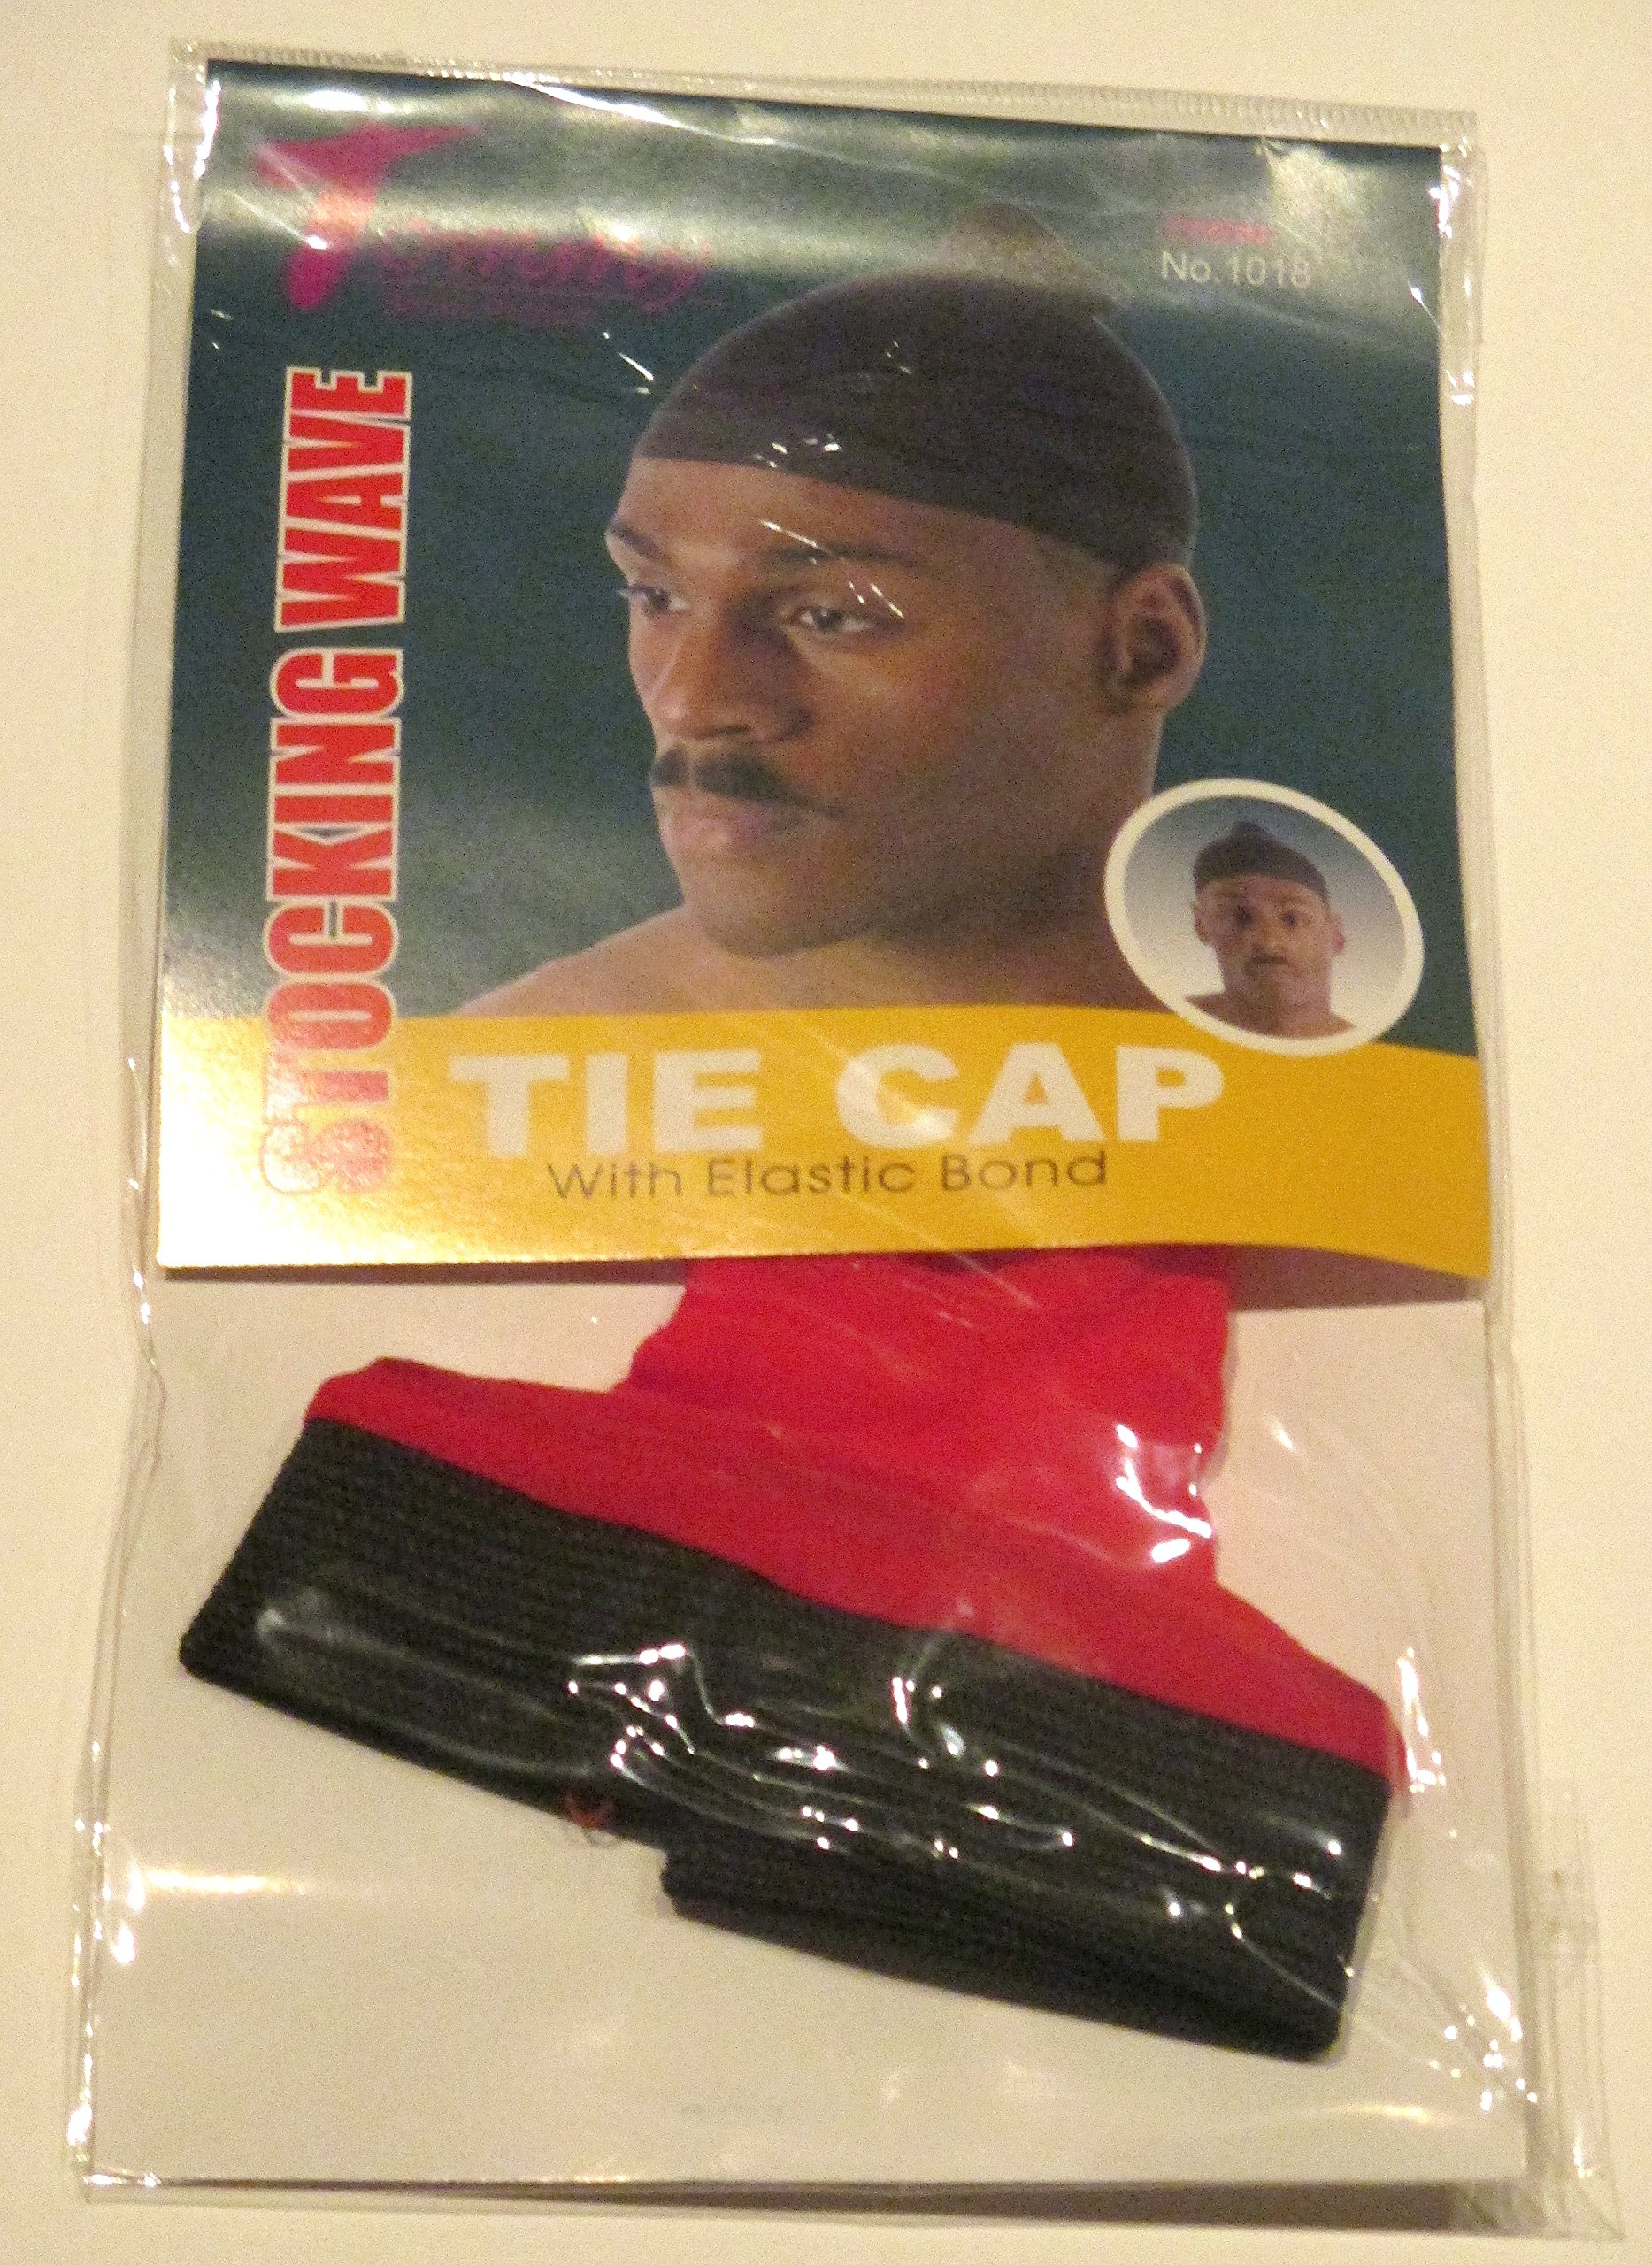 Tommy Stocking Wave TIE CAP with Elastic Band Red Du Rag Doo Rag Skull Cap 1018